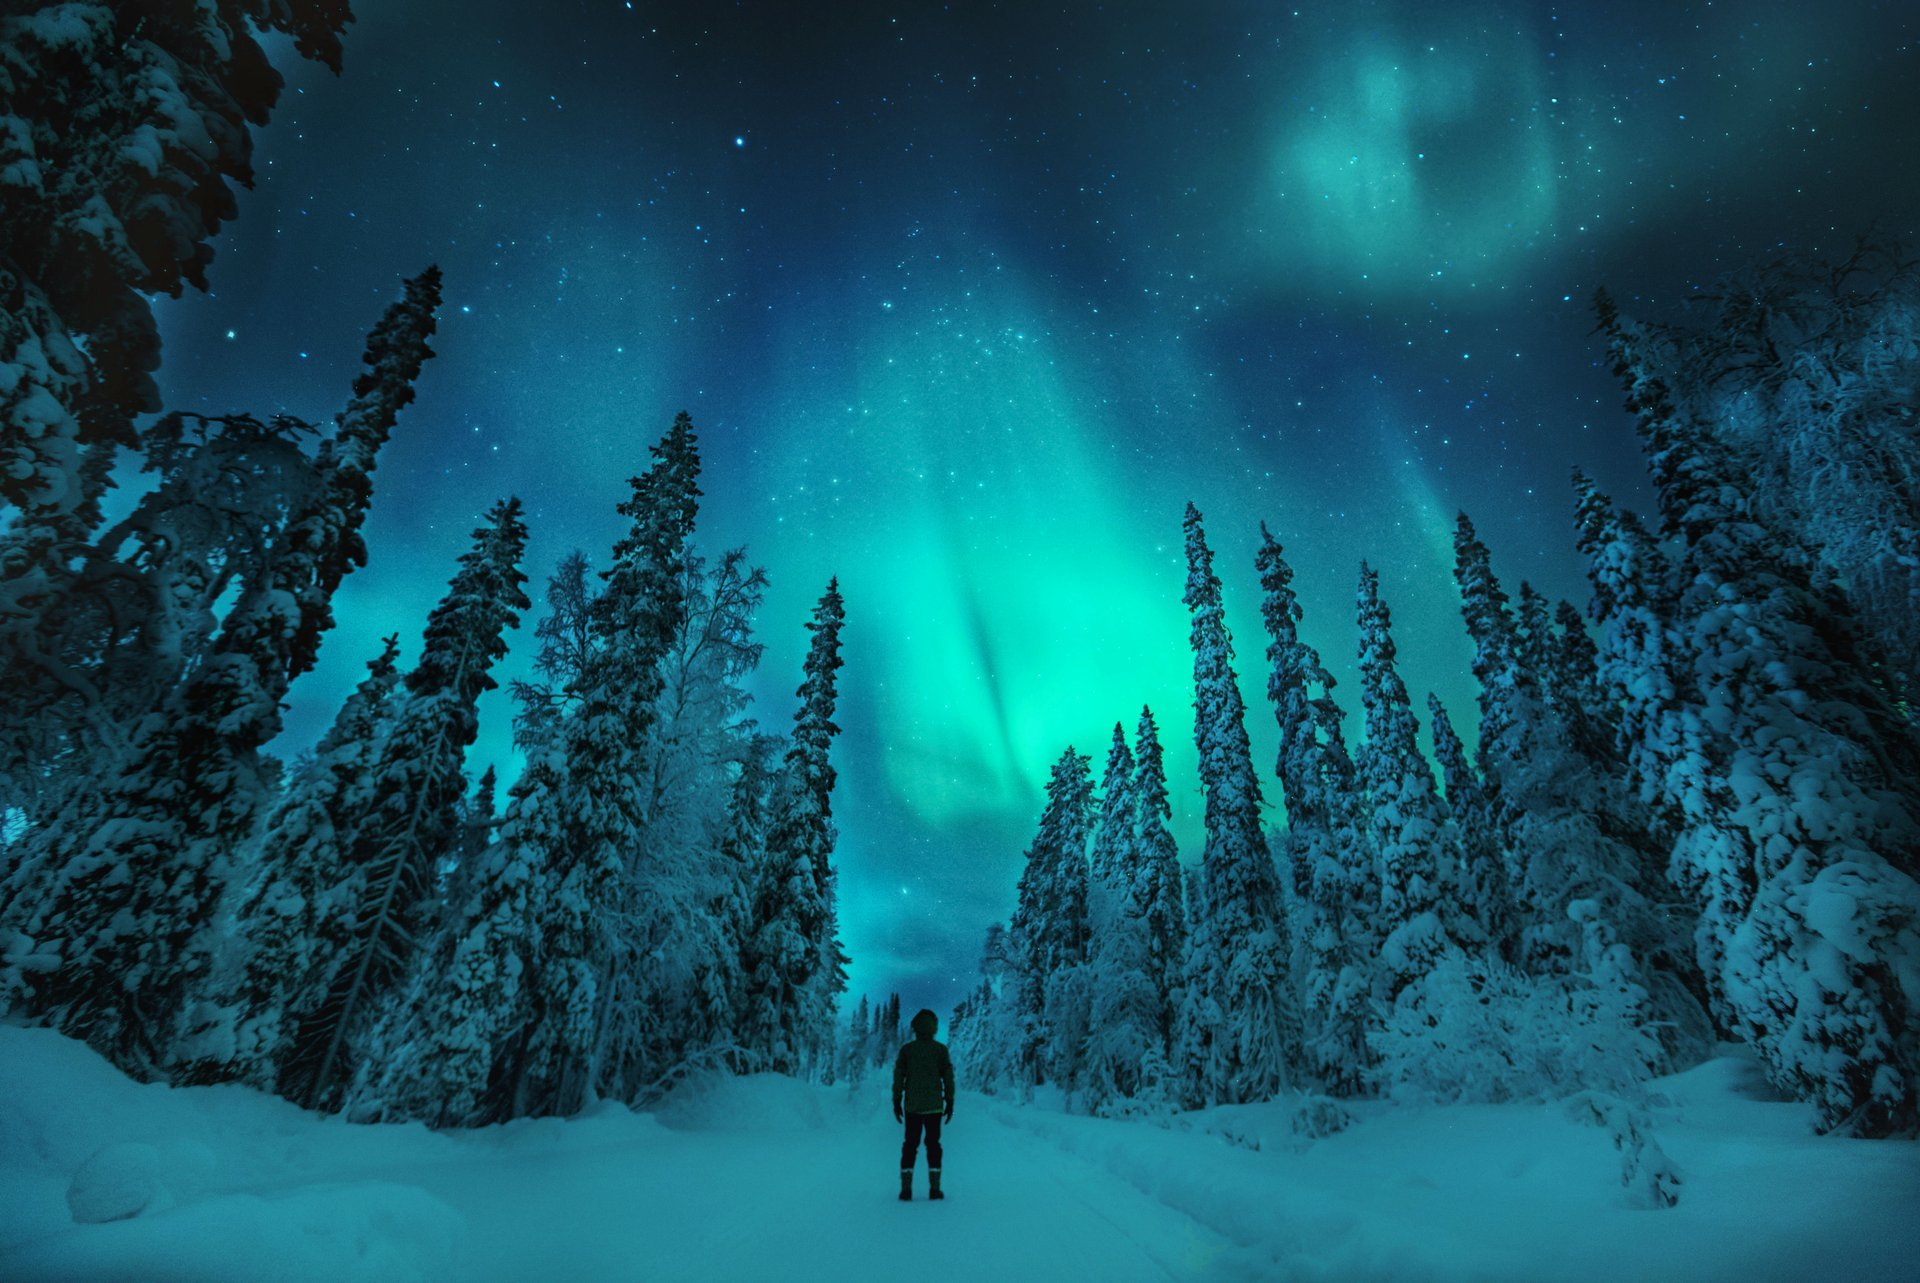 Northern Lights in Finland 2020 - Best Time